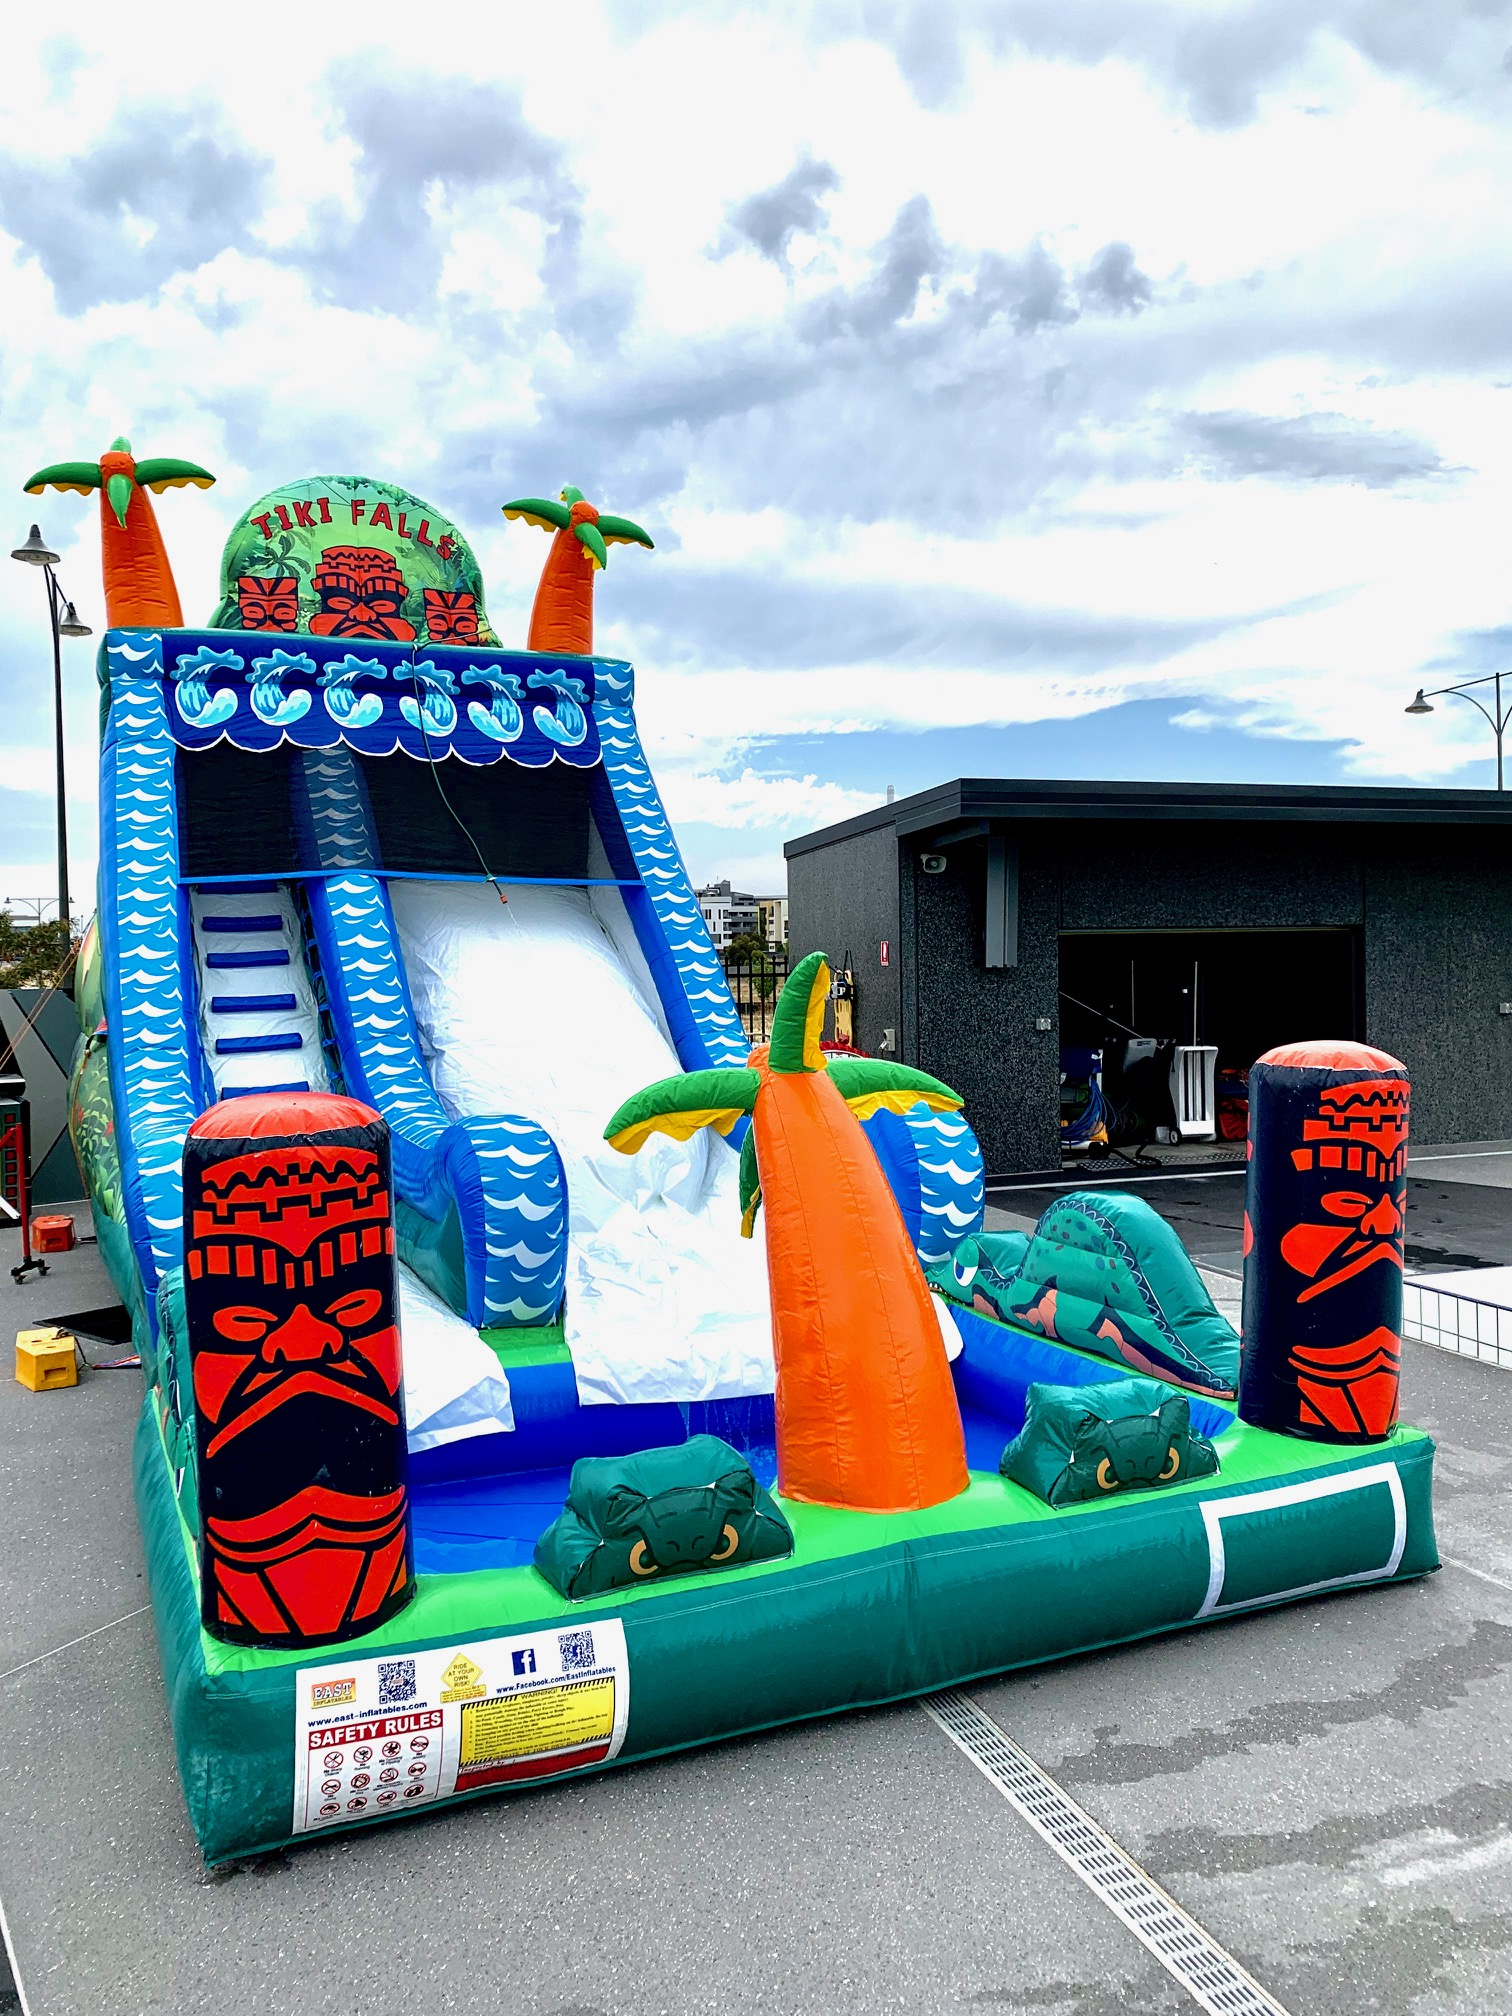 Tiki Falls Water Slide $595 -